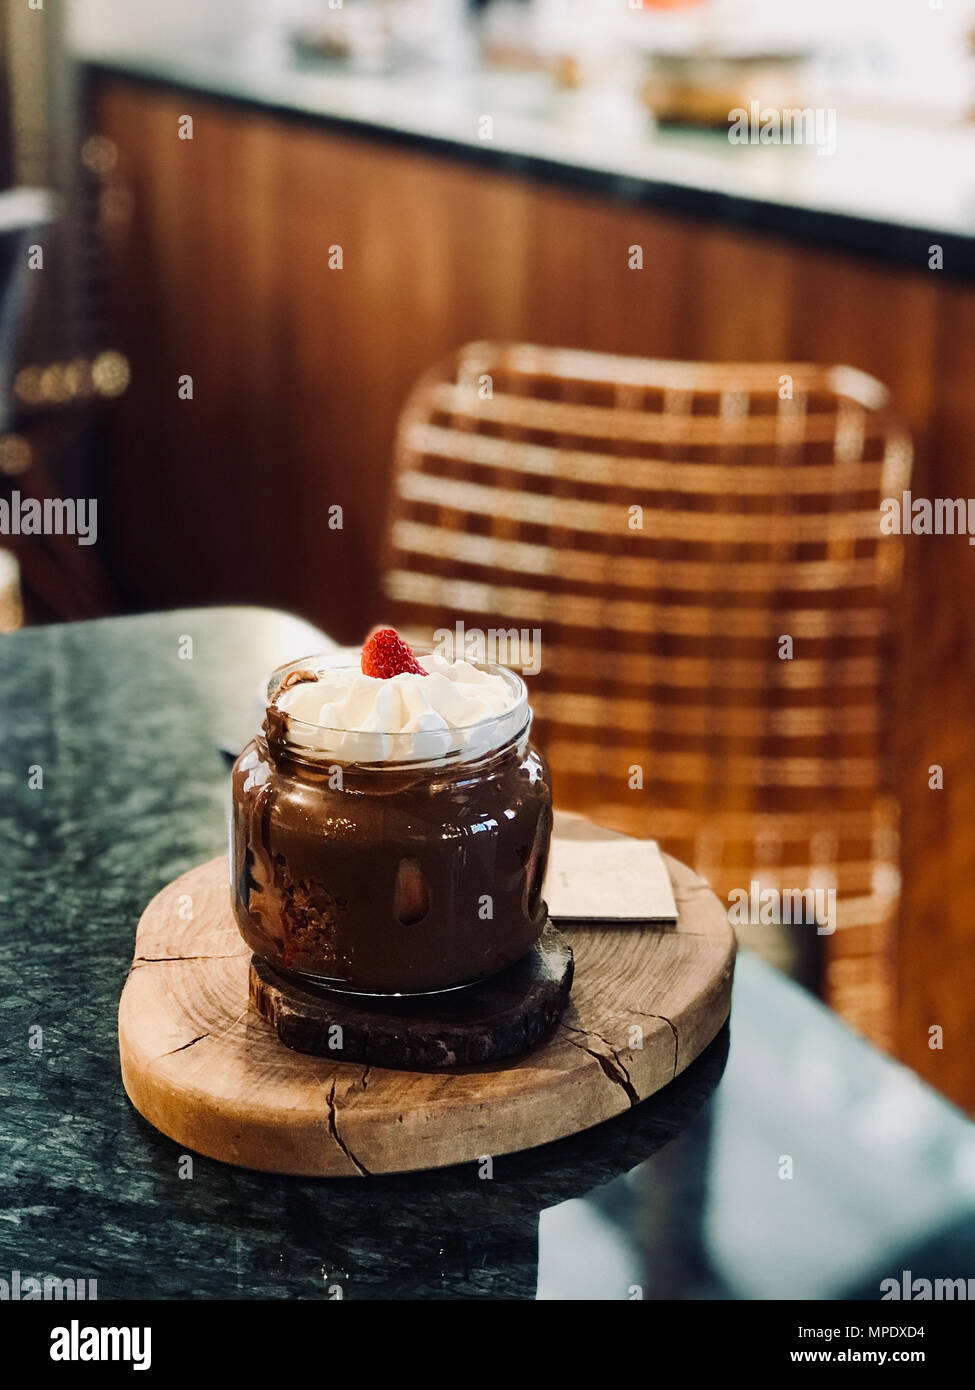 Melted Belgium Chocolate Dessert with Whipped Cream and Strawberry in Jar served at Restaurant. Organic Dessert. Stock Photo